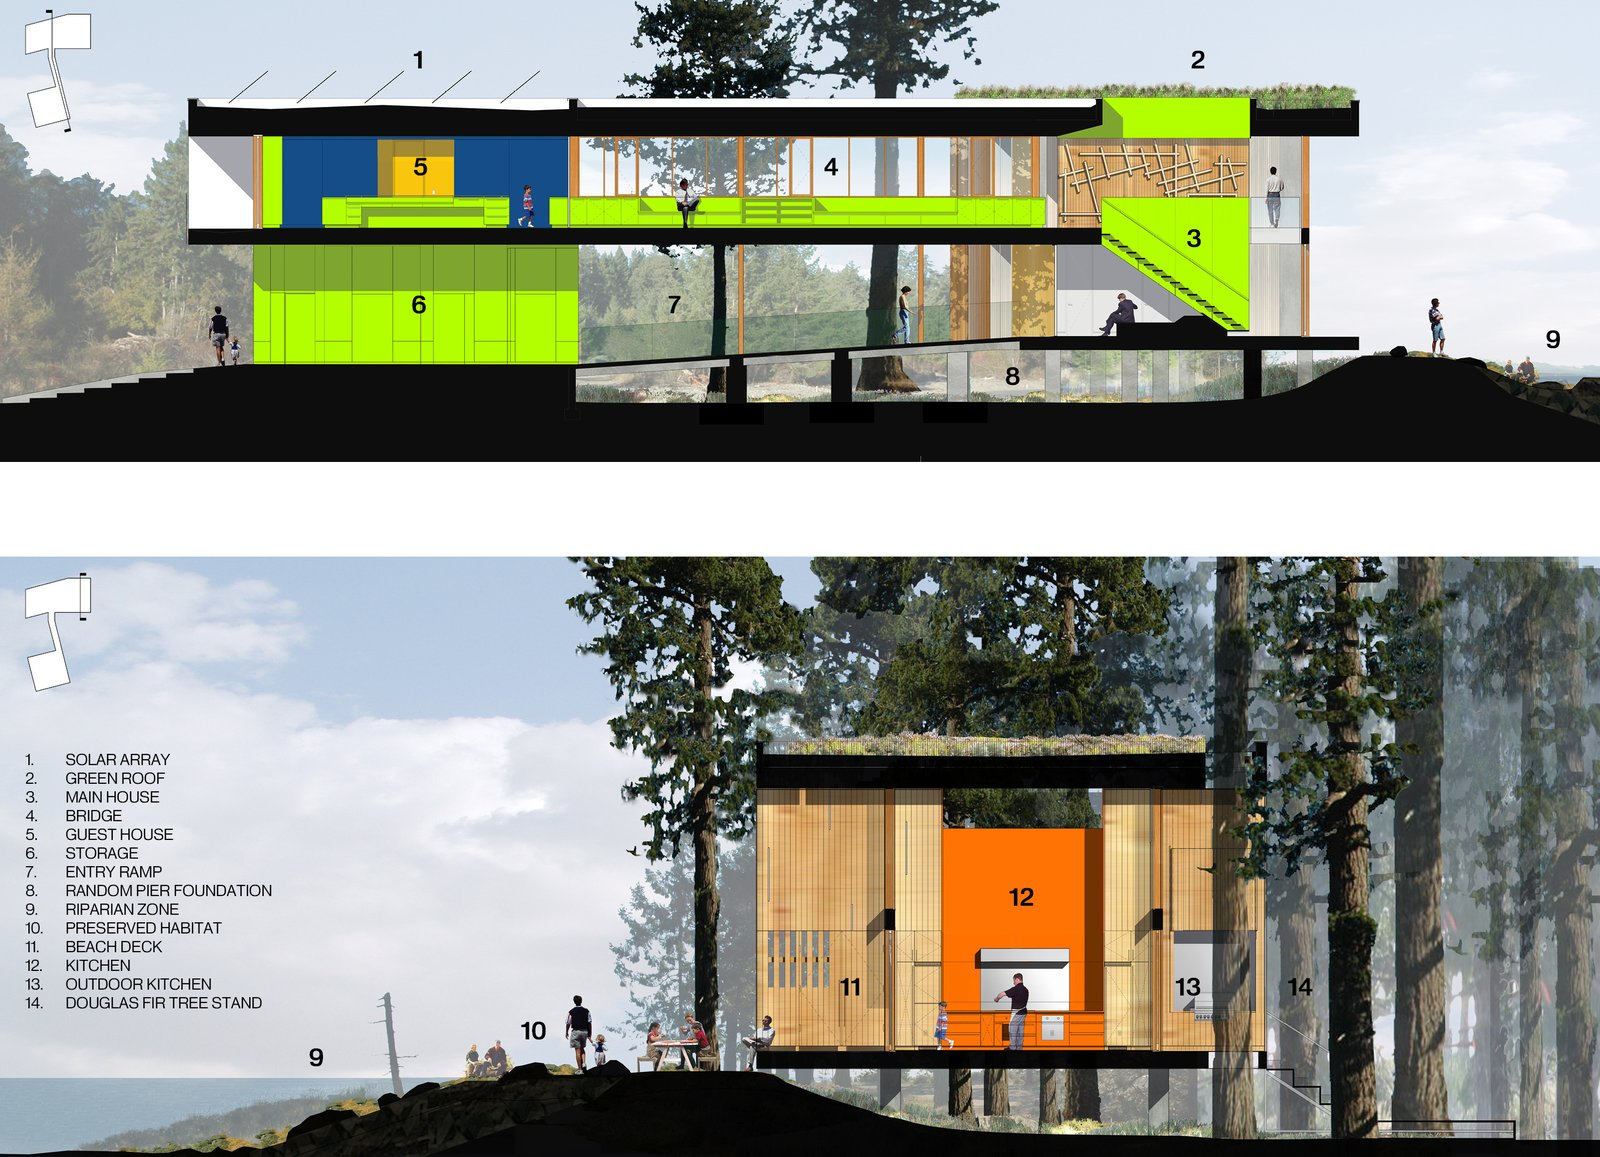 The dwelling acts as two organically interconnected frames, one mineral and one of wood which float above a virtually undisturbed site between one of the world's richest marine tidal ecosystems in the northeast - a wetland preserve to the southwest. The two buildings hover over the site connected by a hald enclosed bridge   #rendering #sections #beachhouse #interstice #intersticearchitects.com #nature   TreeHugger